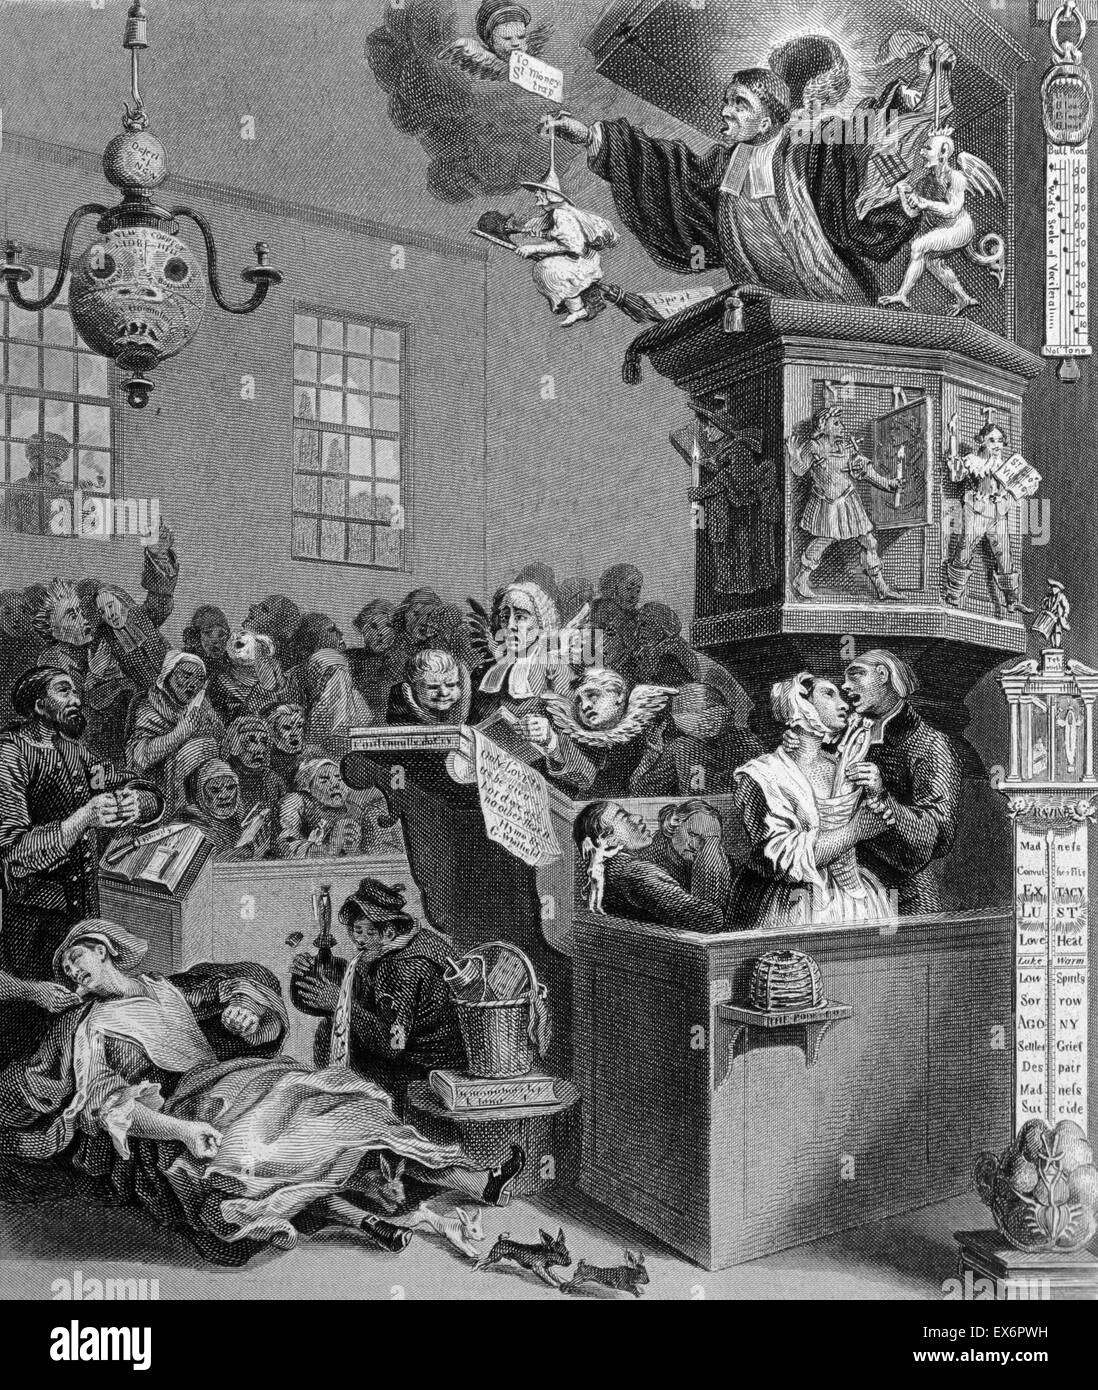 Engraving by British artist & engraver, William Hogarth 1697–1764: Credulity, Superstition and Fanaticism 1762. - Stock Image